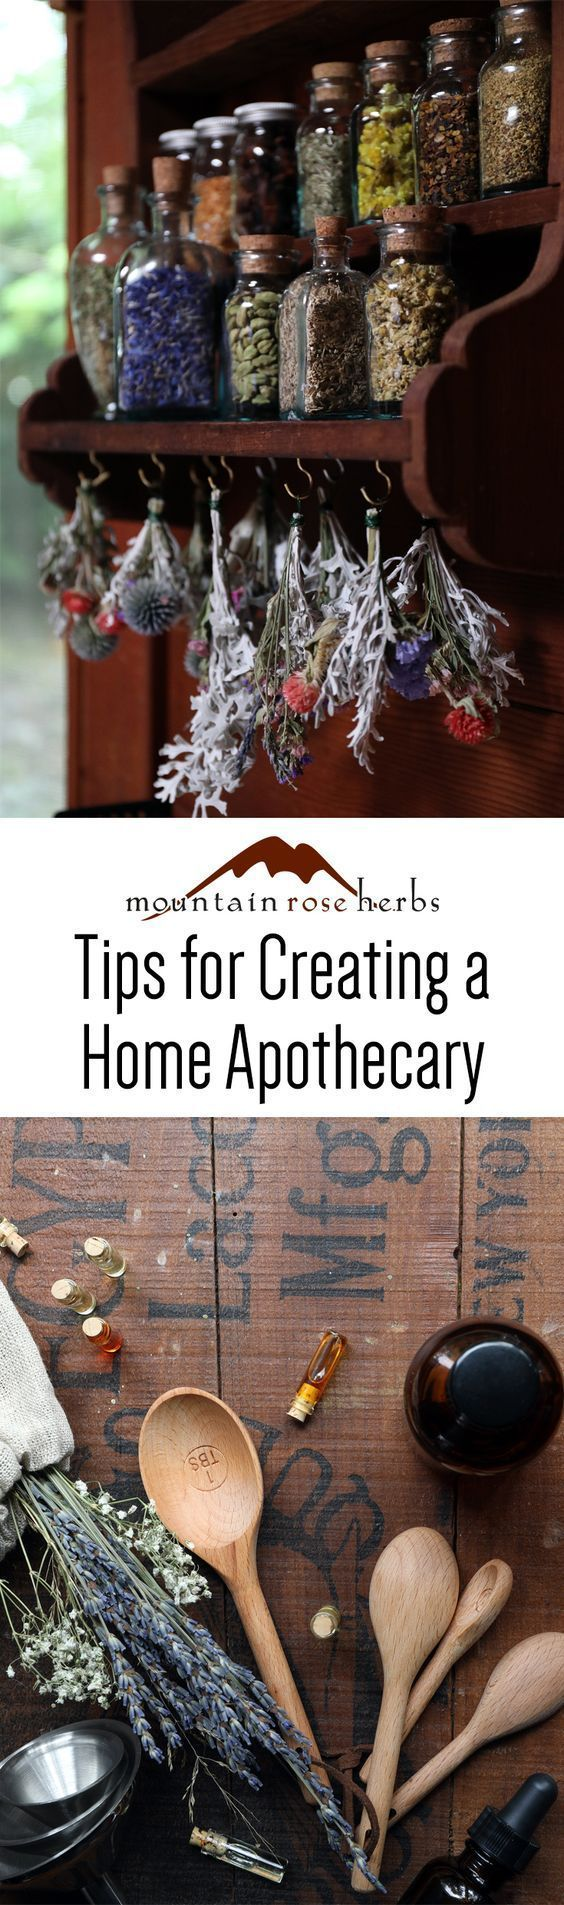 Tips for Creating a Home Herbal Apothecary - Learn how to start and care for your herbalism supplies from an experienced homesteading herbalist! for Creating a Home Herbal Apothecary - Learn how to start and care for your herbalism supplies from an experienced homesteading herbalist!